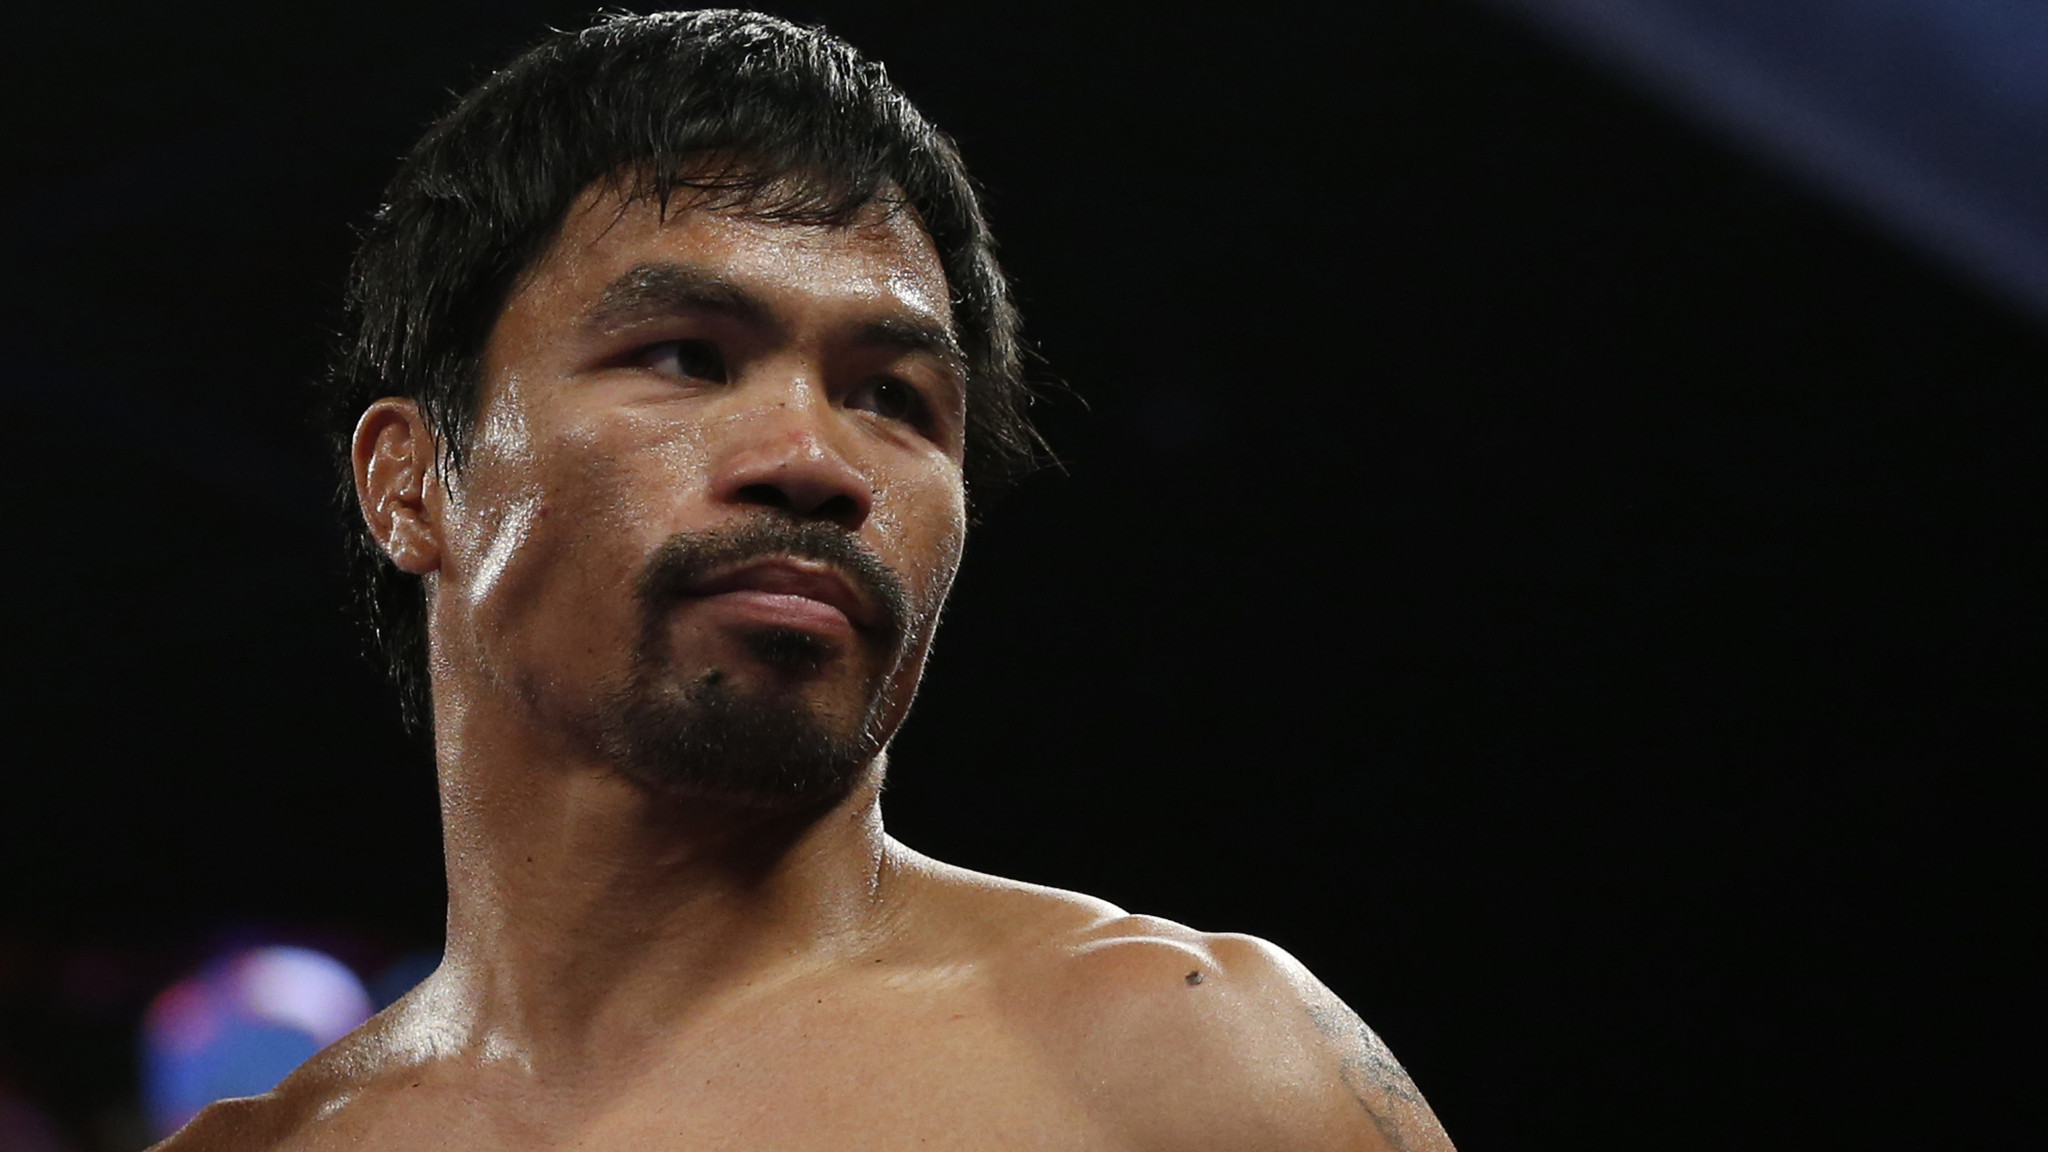 Manny Pacquiao: Floyd Mayweather should sign this month to fight May 2 - LA Times